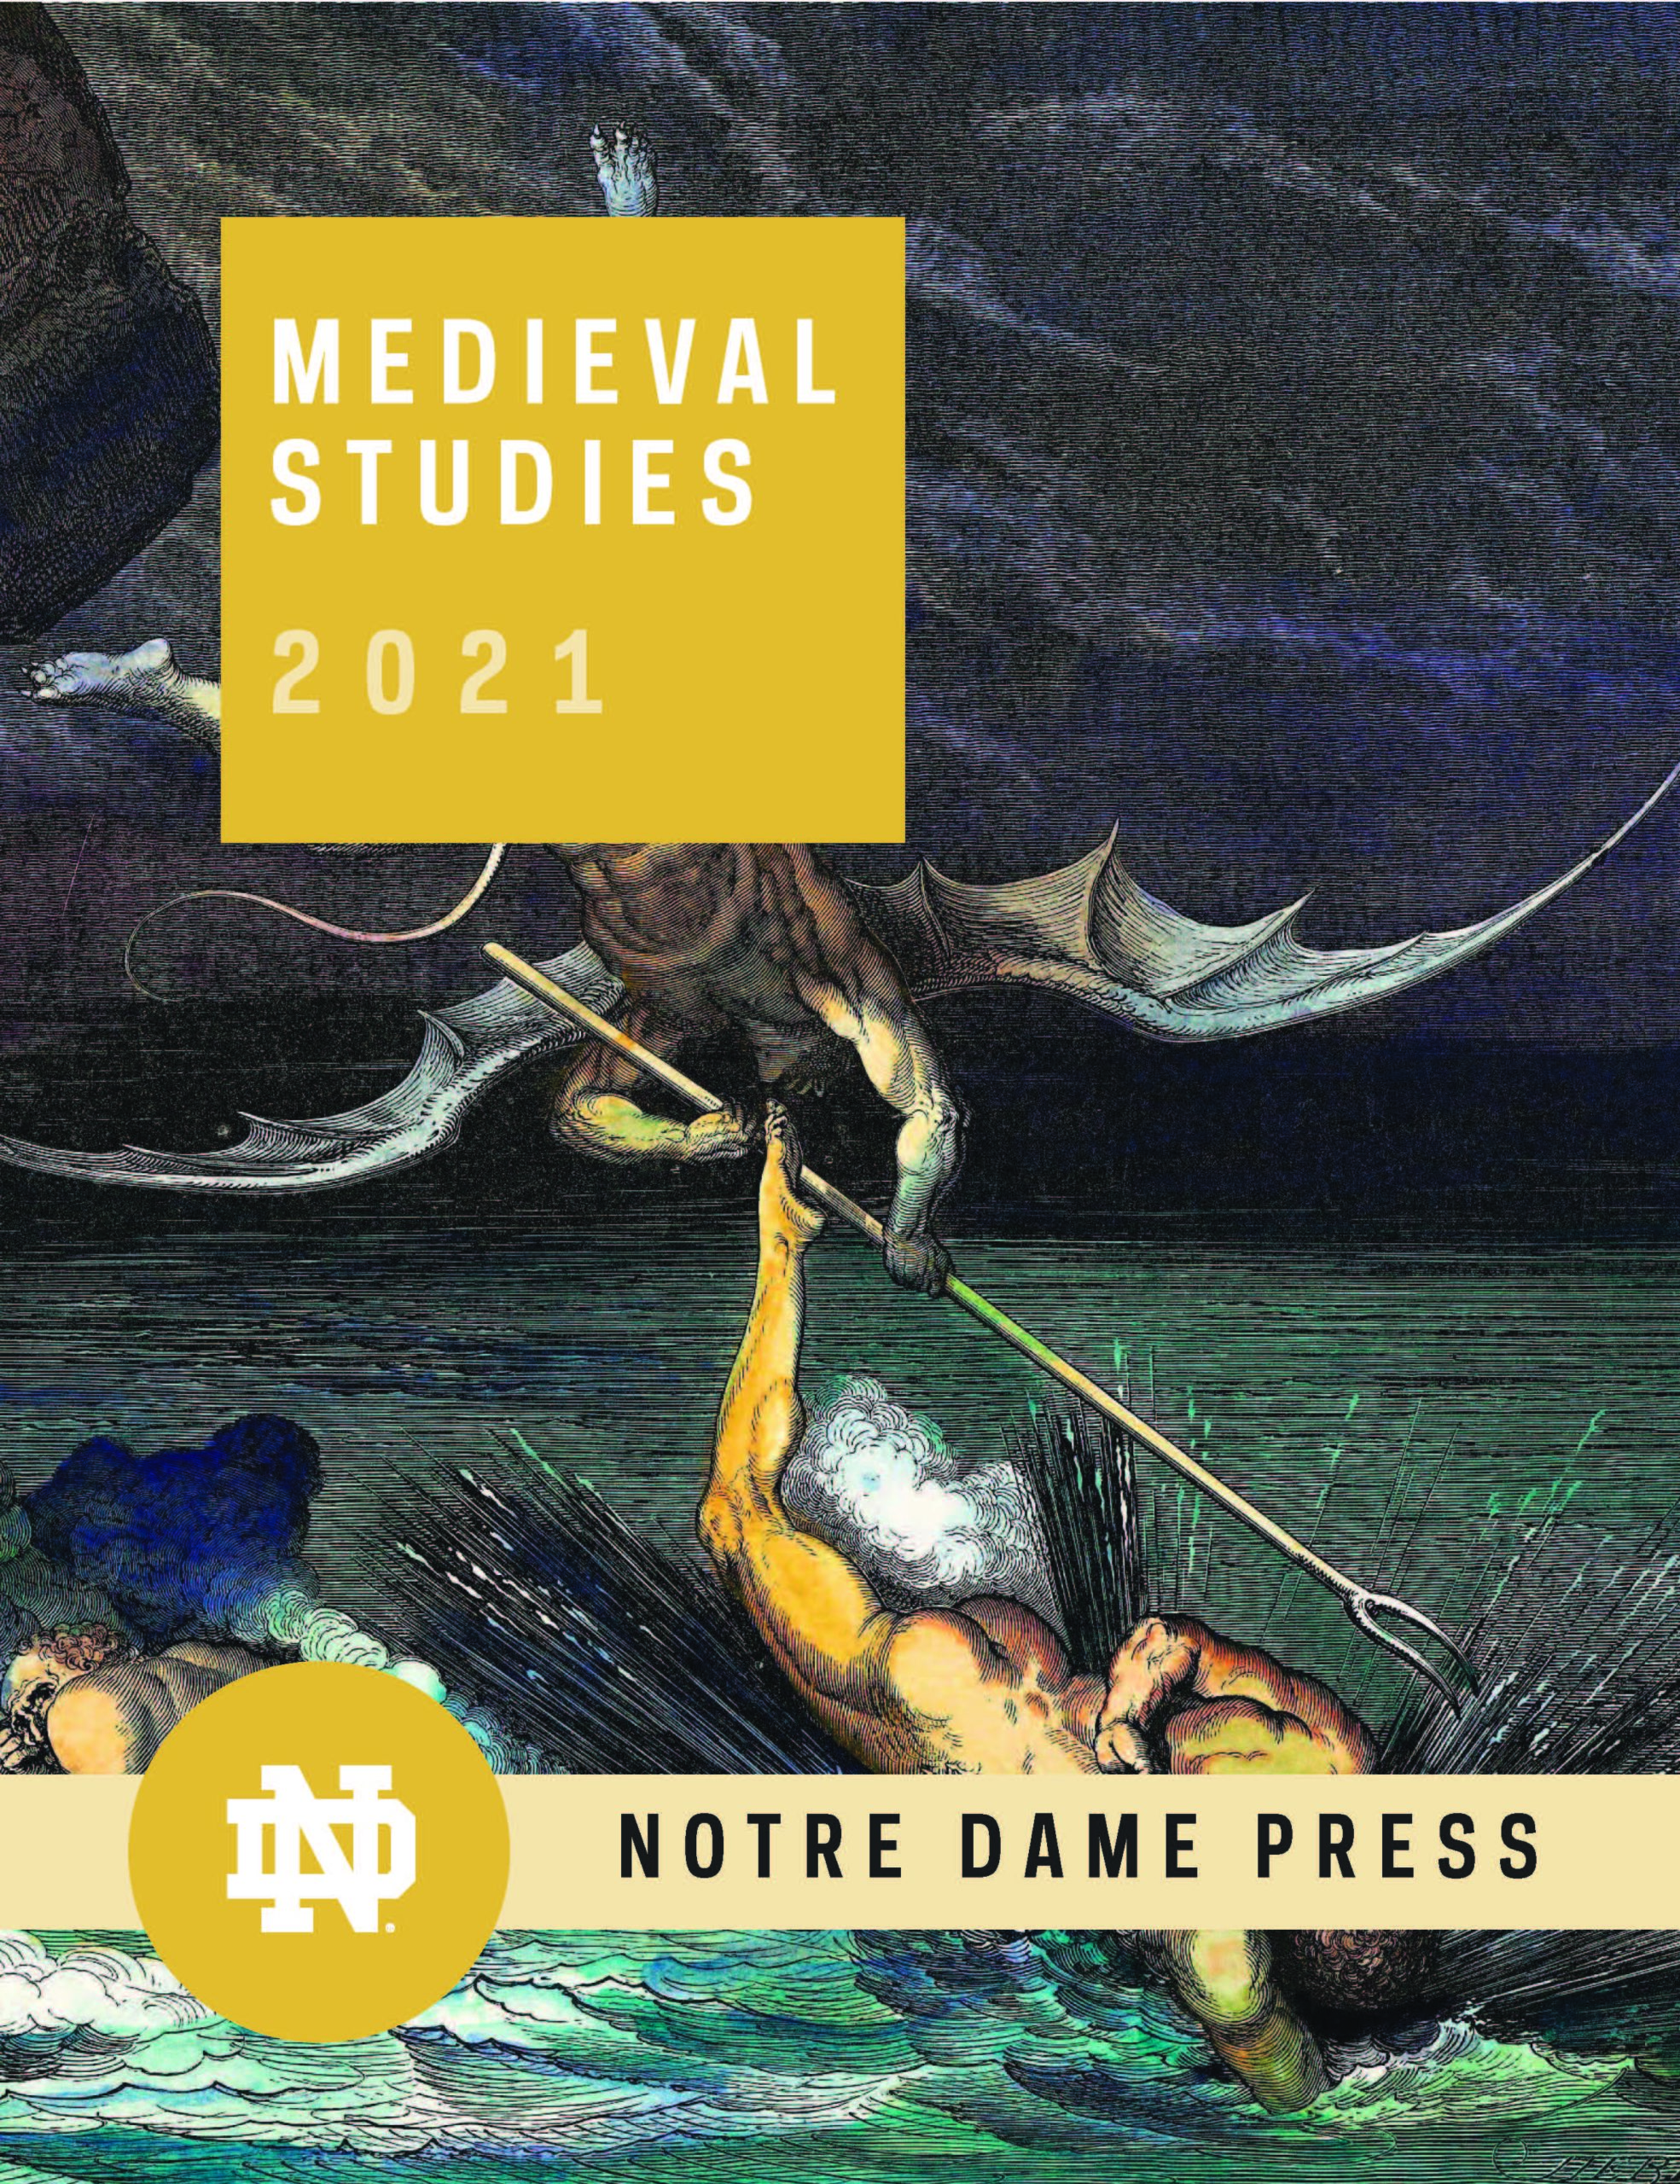 Medieval Studies_2021_front cover only